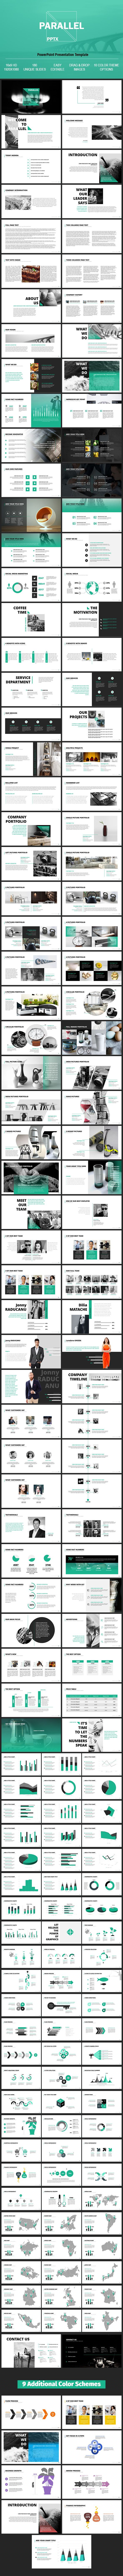 Parallel - Multipurpose PowerPoint Presentation Template | Kreativ